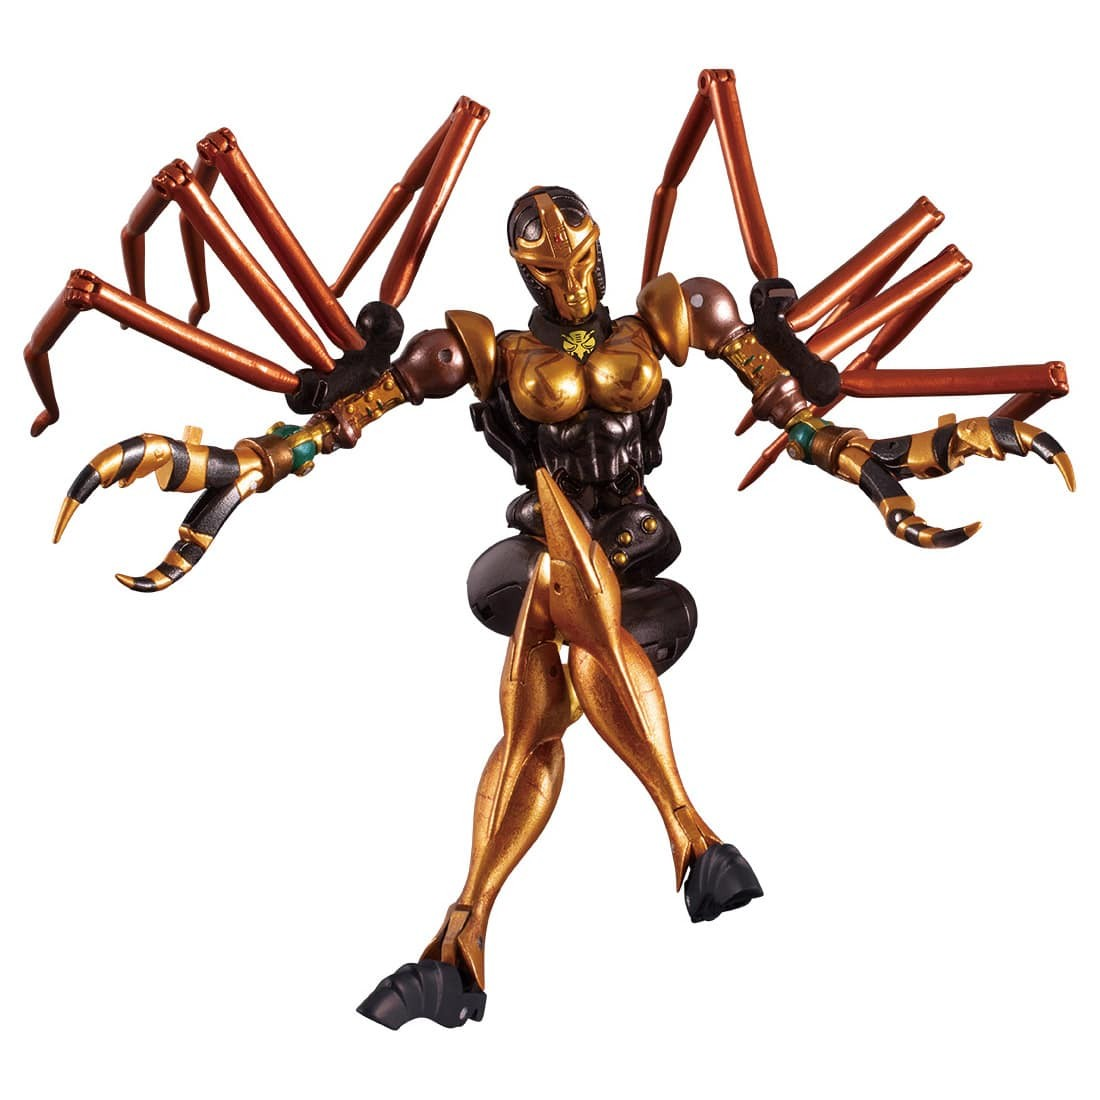 MISB in USA Transformers Takara Masterpiece MP-46 Blackarachnia Beast Wars